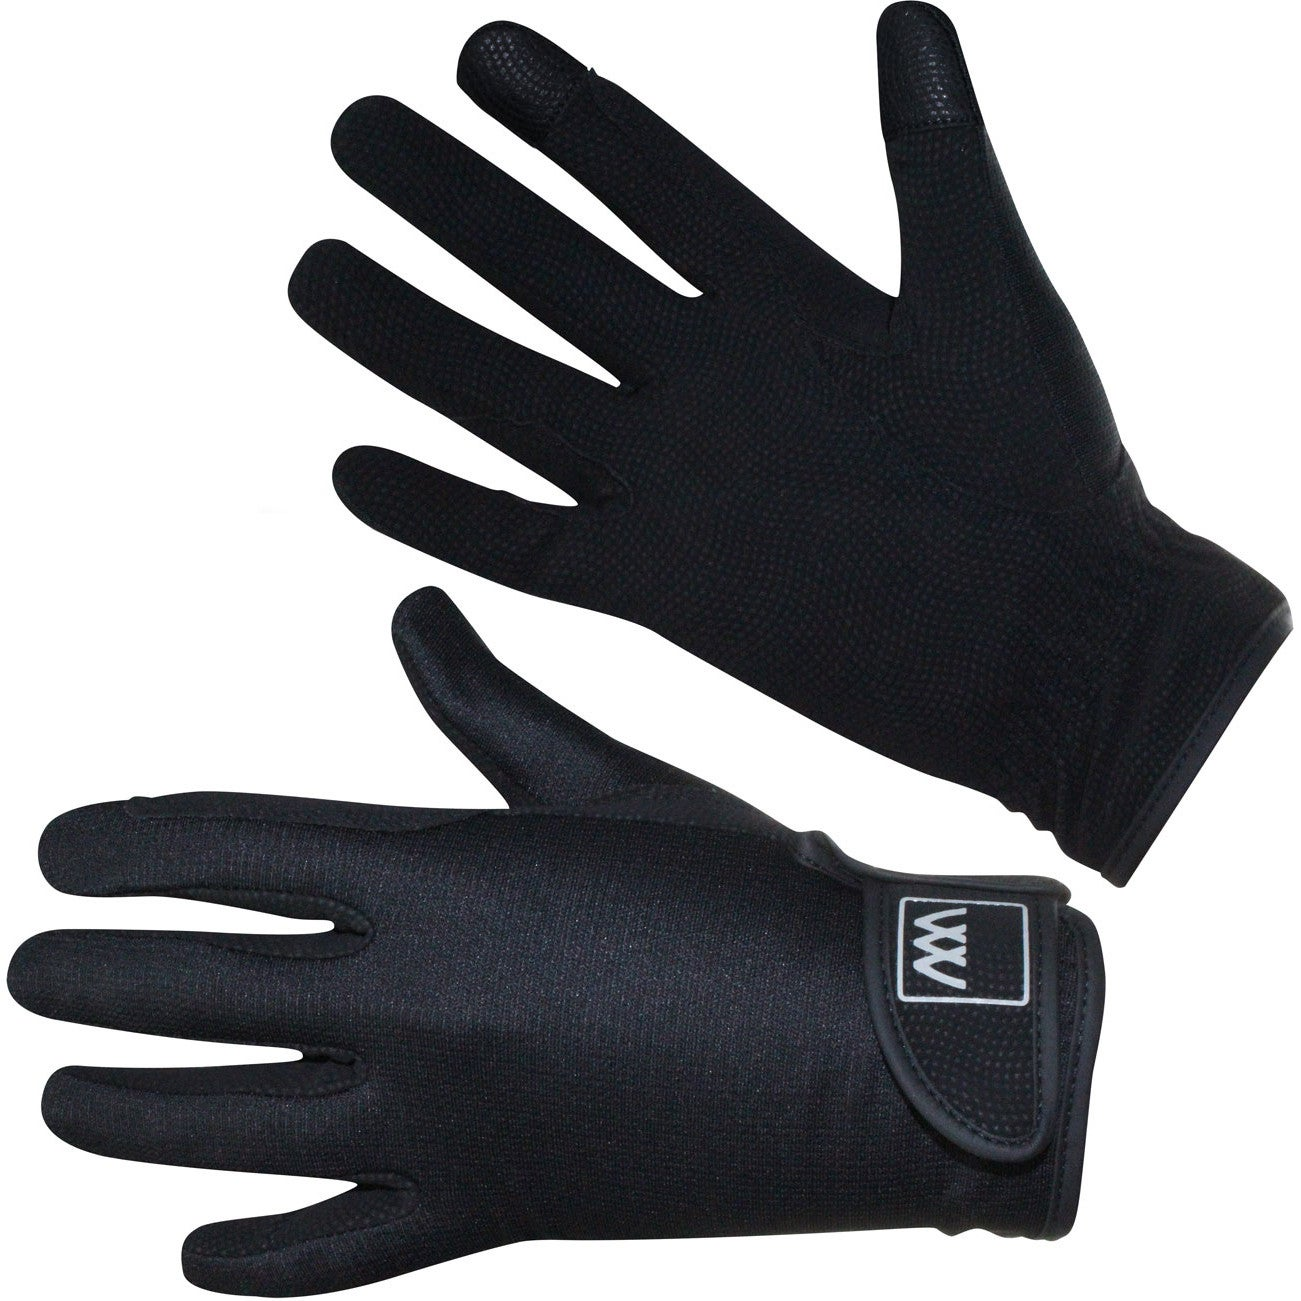 Woof Wear Connect Smartphone Riding Gloves